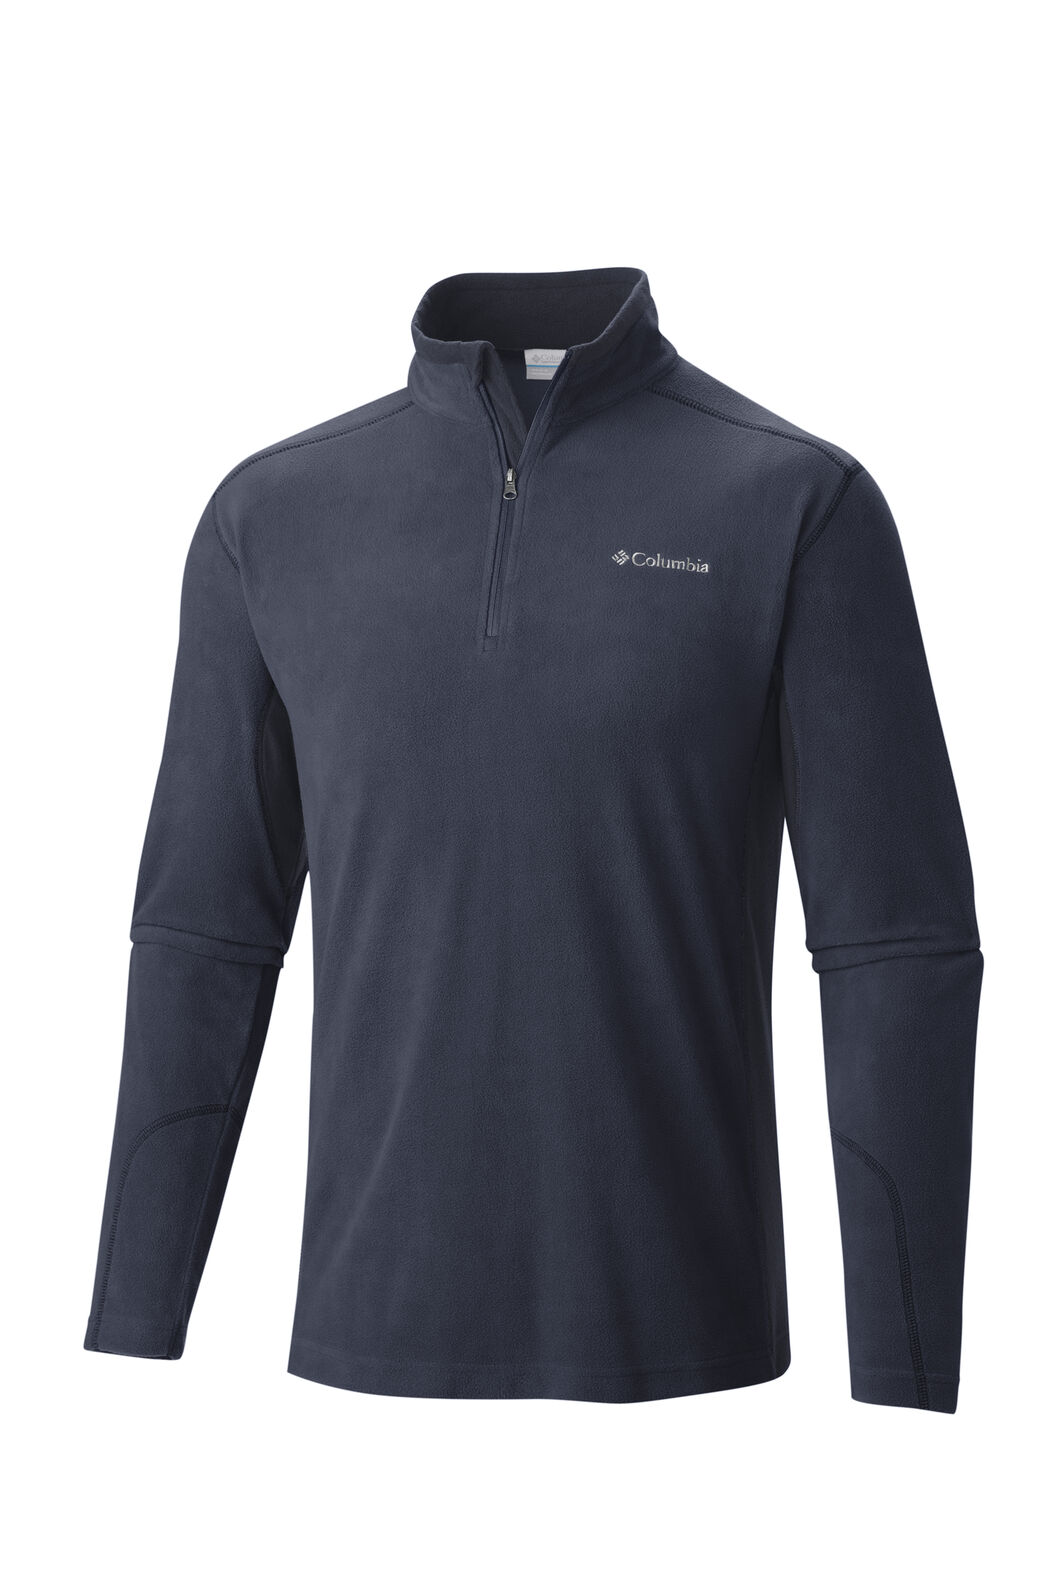 Columbia Kalmath Range II Half Zip Fleece Pullover - Men's, COLLEGIATE NAVY, hi-res